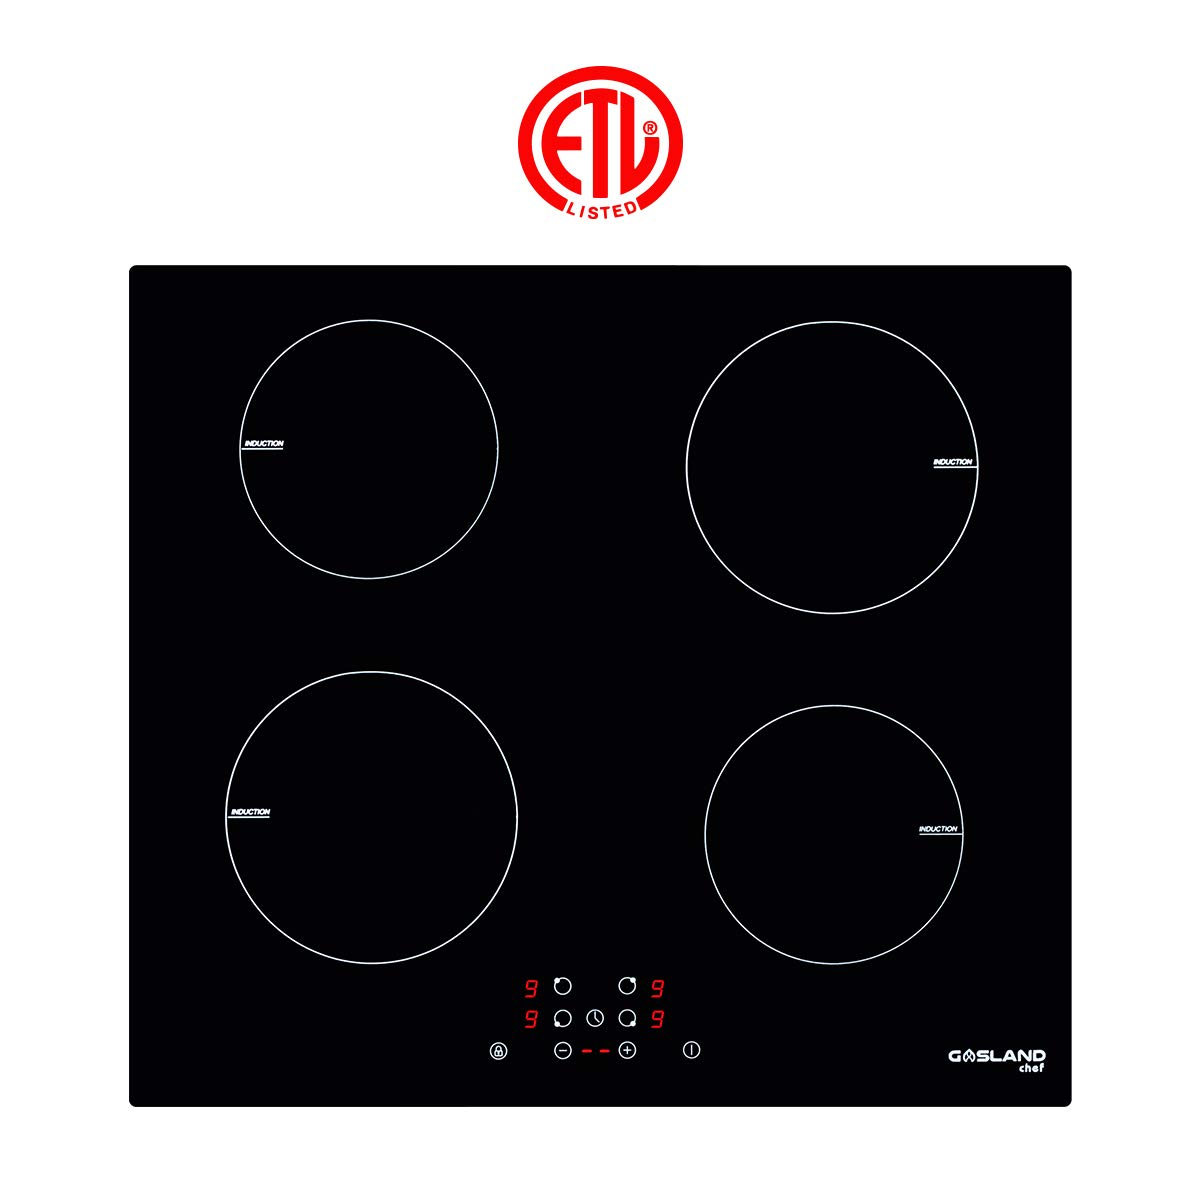 Induction Cooktop, Gasland chef IH60BF Built-in Induction Cooker, Vitro Ceramic Surface Electric Cooktop, 24'' Electric Stove With 4 Burners, ETL Safety Certified, Kids Safety Lock Easy To Clean